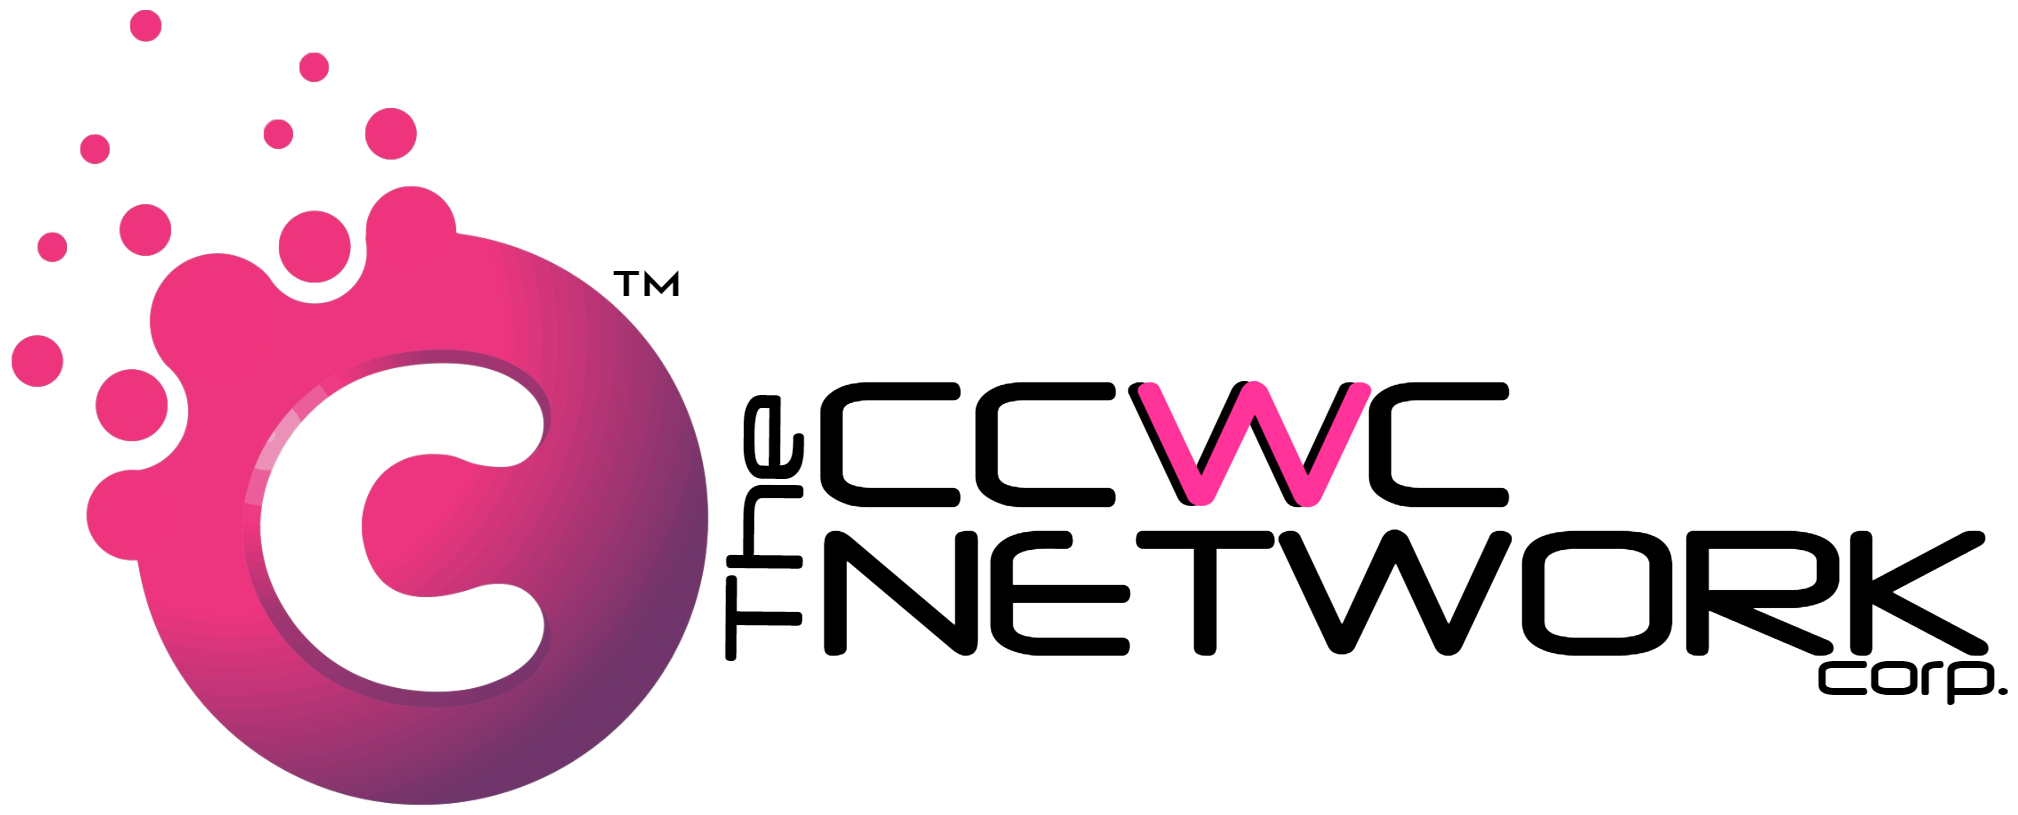 The CCWC Network Corp logo for Stripe